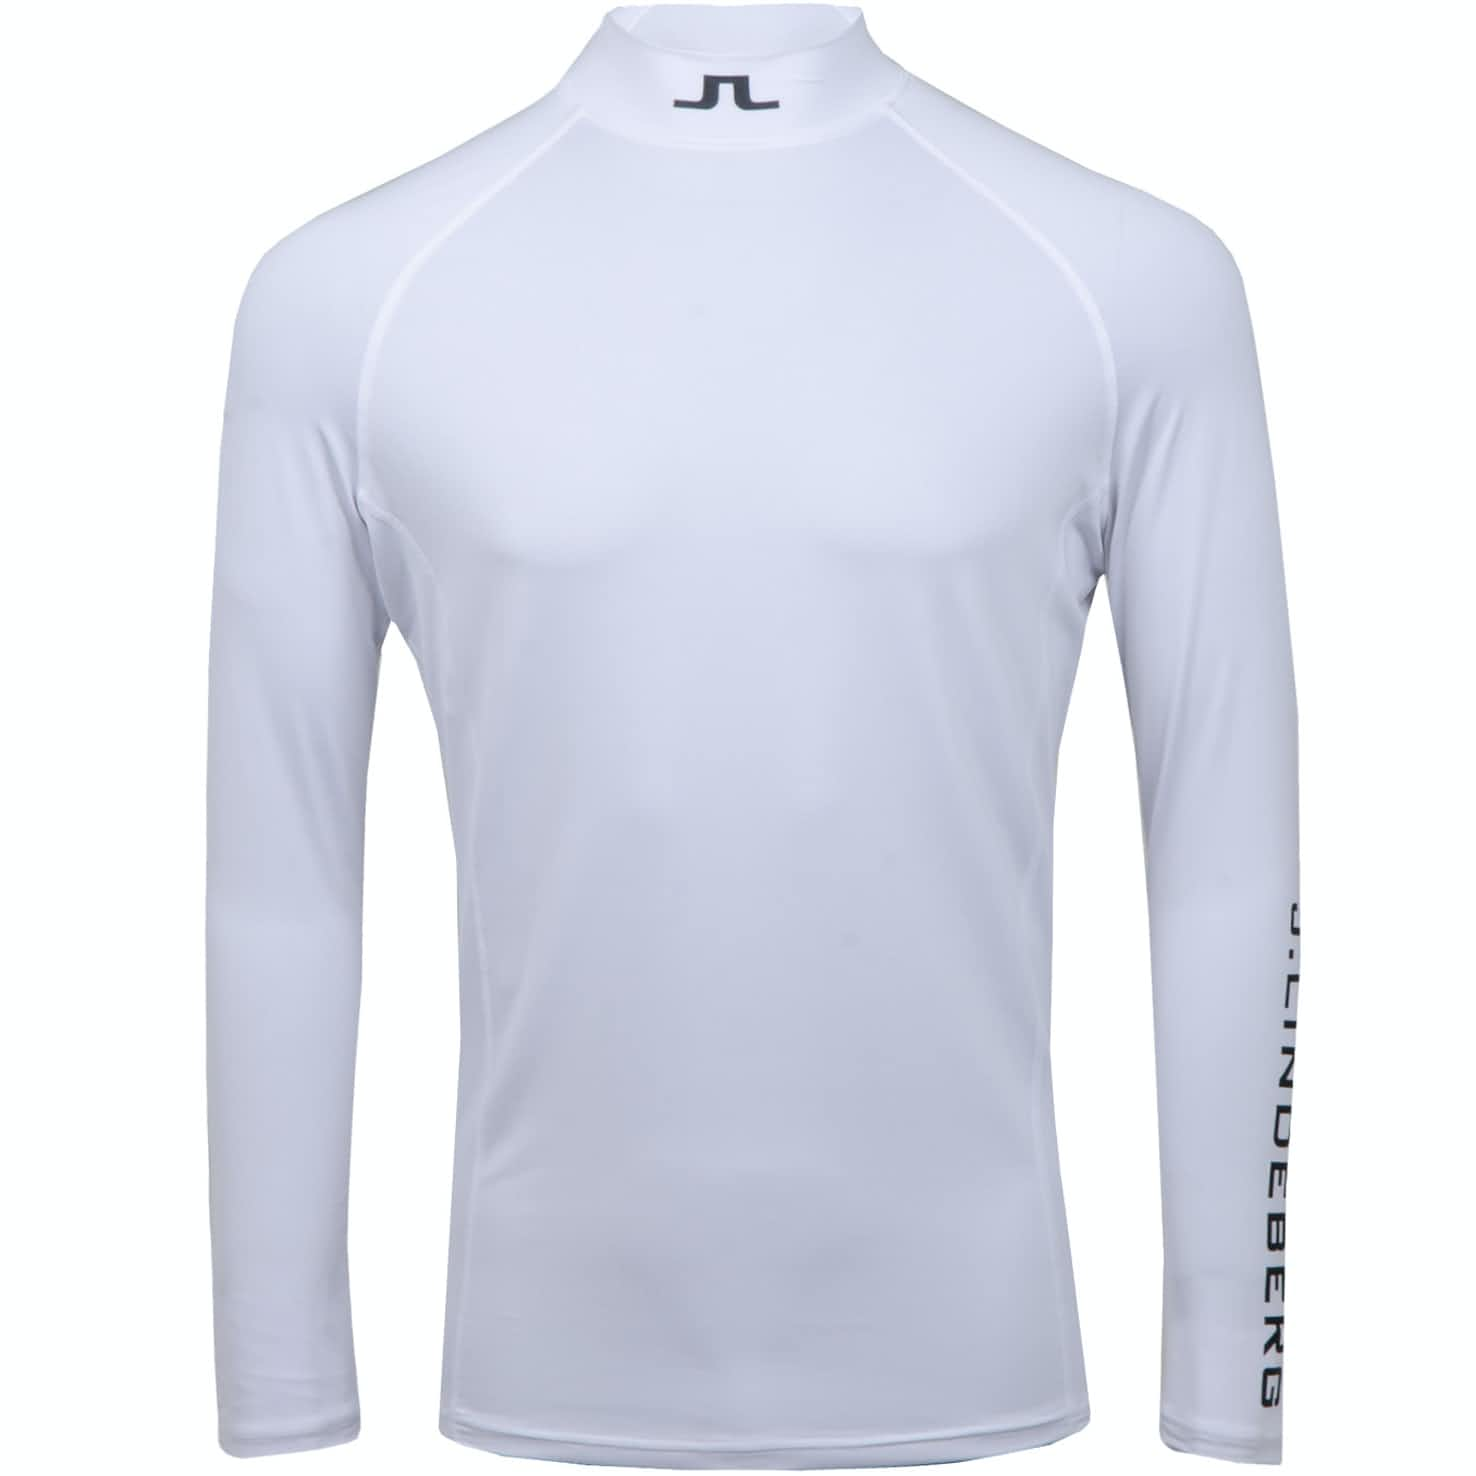 Aello Soft Compression White - 2020